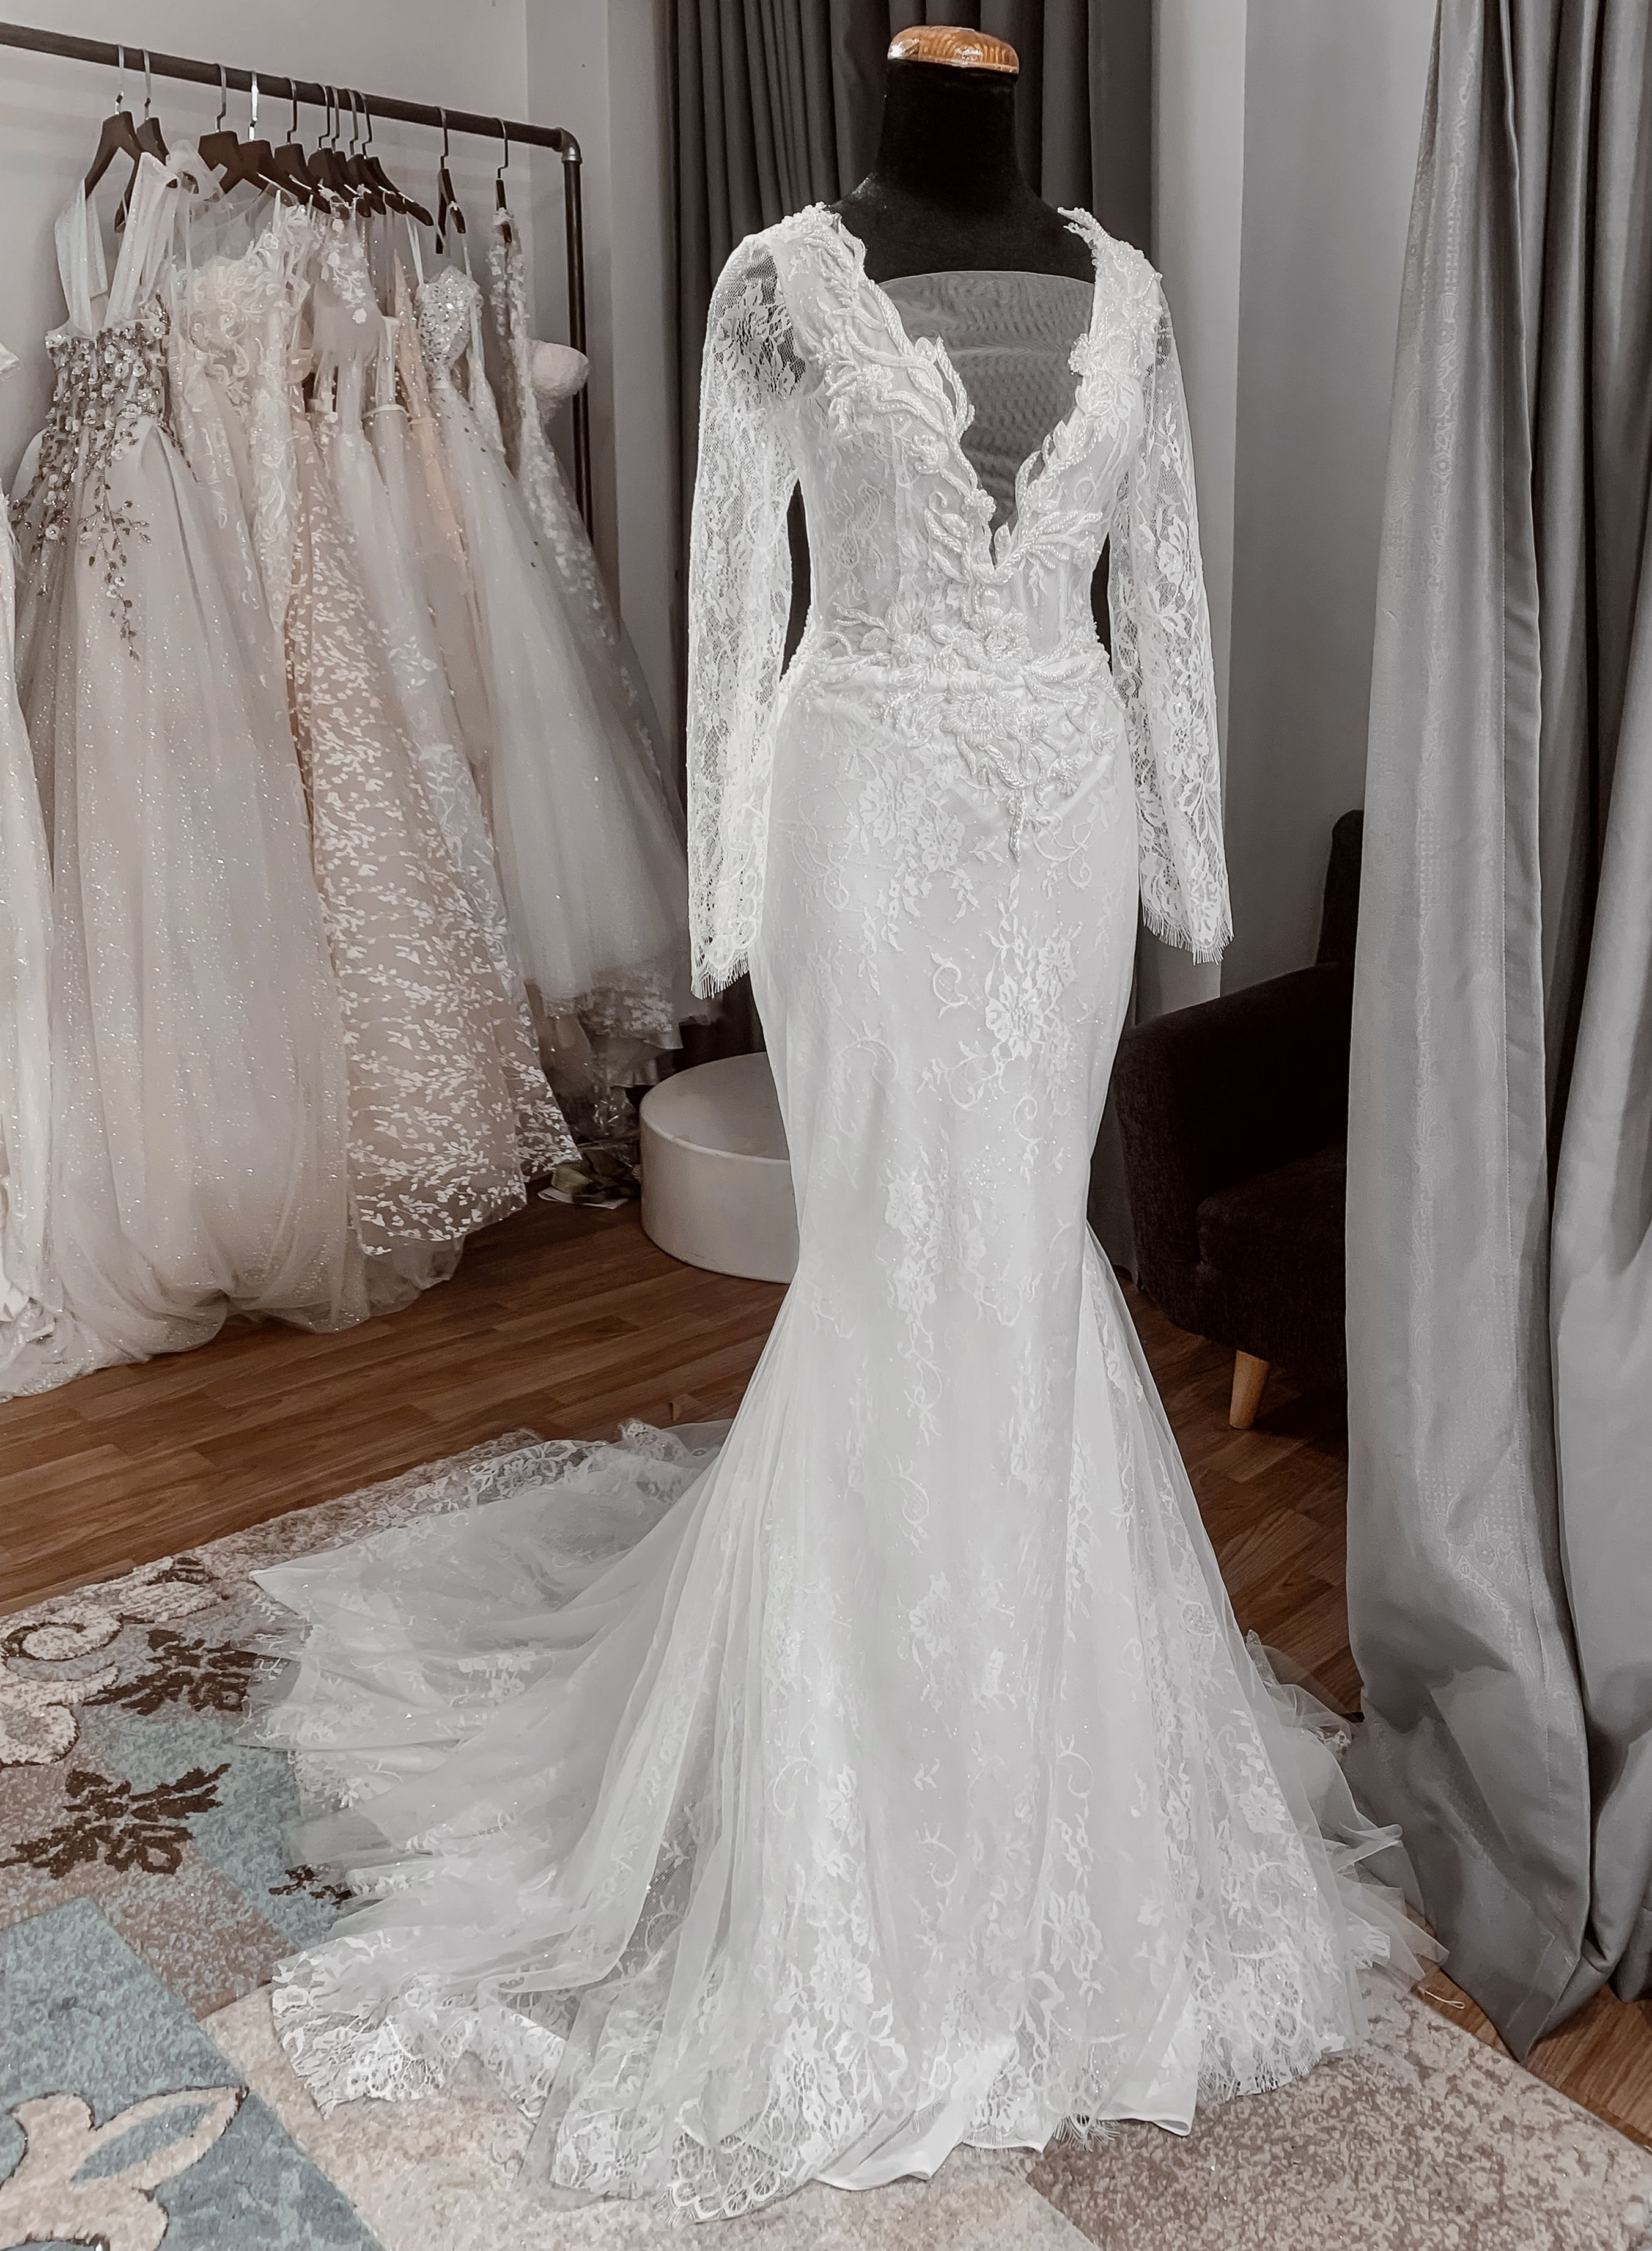 Wedding Dress With Long Sleeves Vintage Lace Bridal Gown Wedding Dresses Modest Bridal Dresses Lace Bridal Gown [ 3682 x 2702 Pixel ]